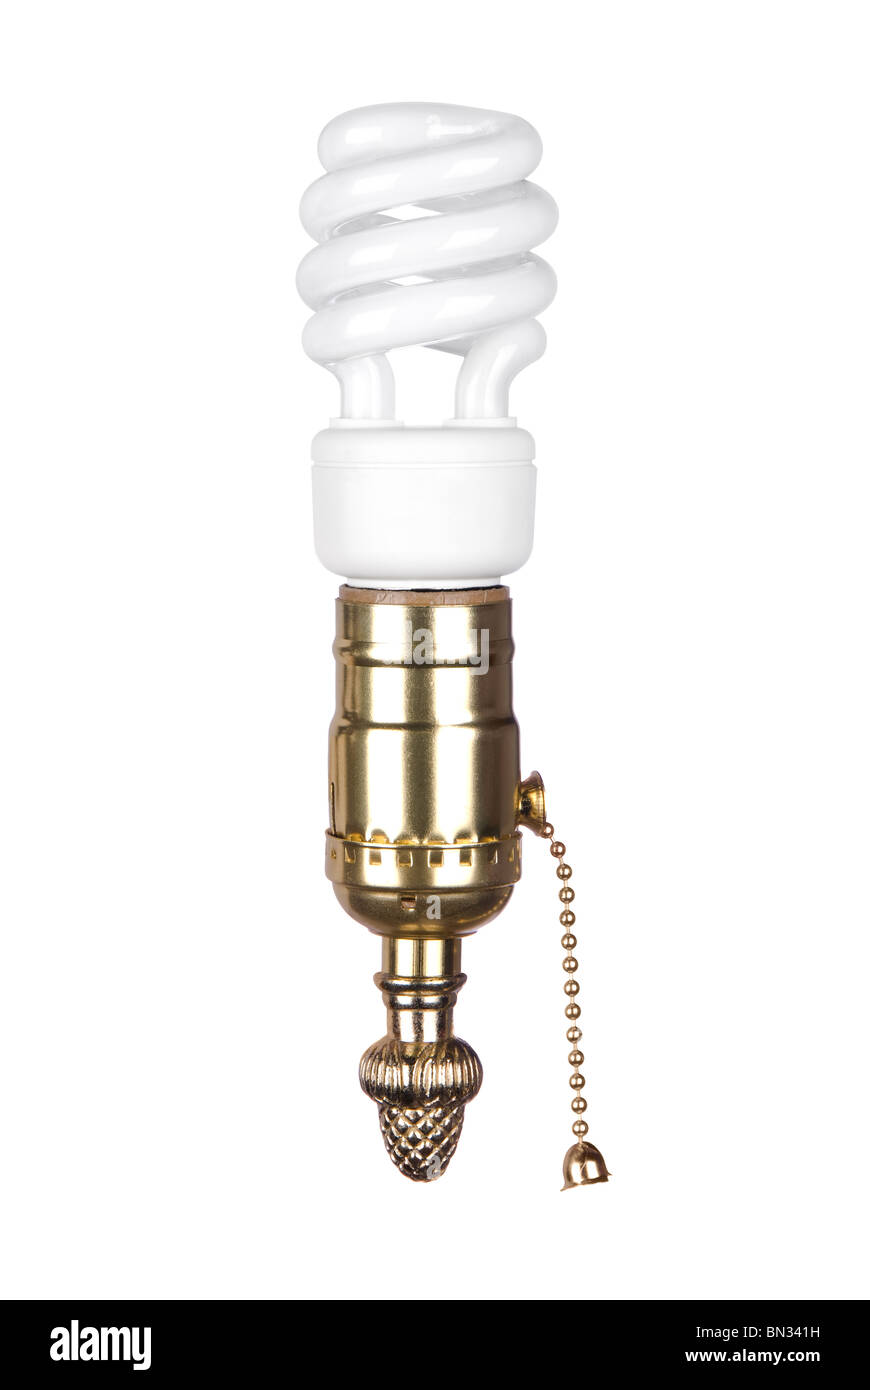 An energy efficient spiral light bulb and brass light socket with pull chain isolated on white. - Stock Image